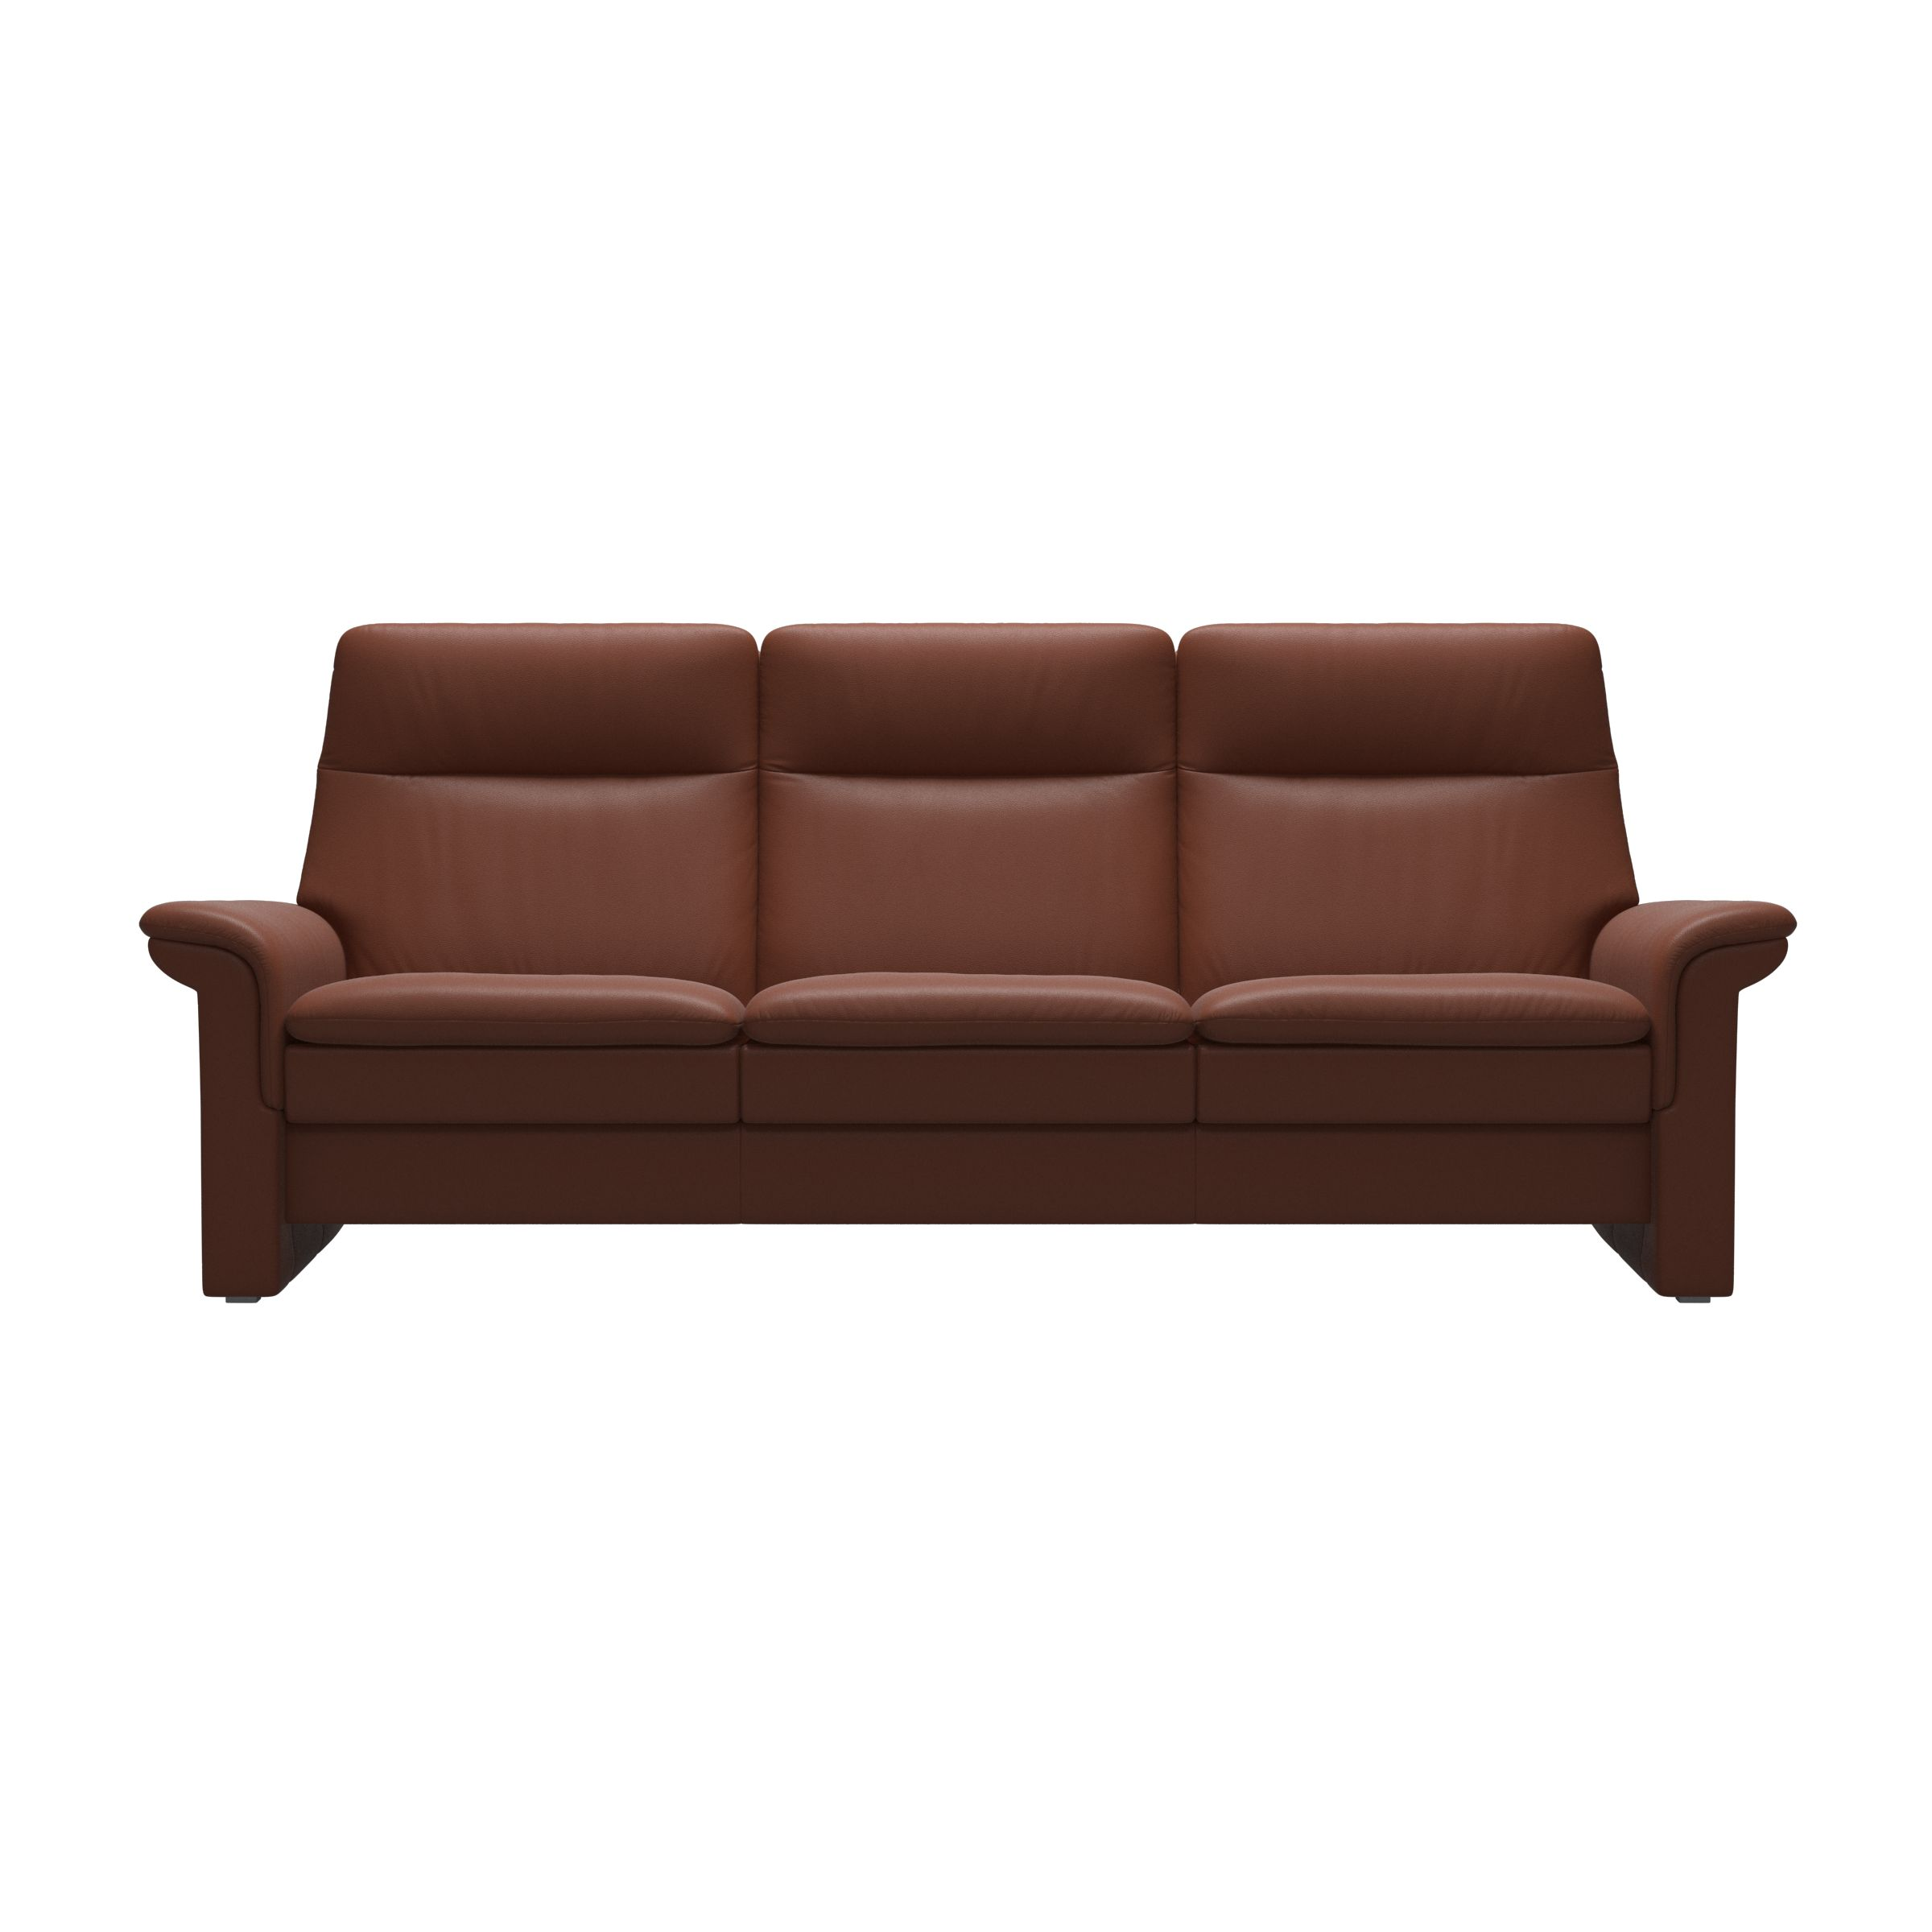 Retro Sessel Sale Stressless Saga High Back Sofa Stressless